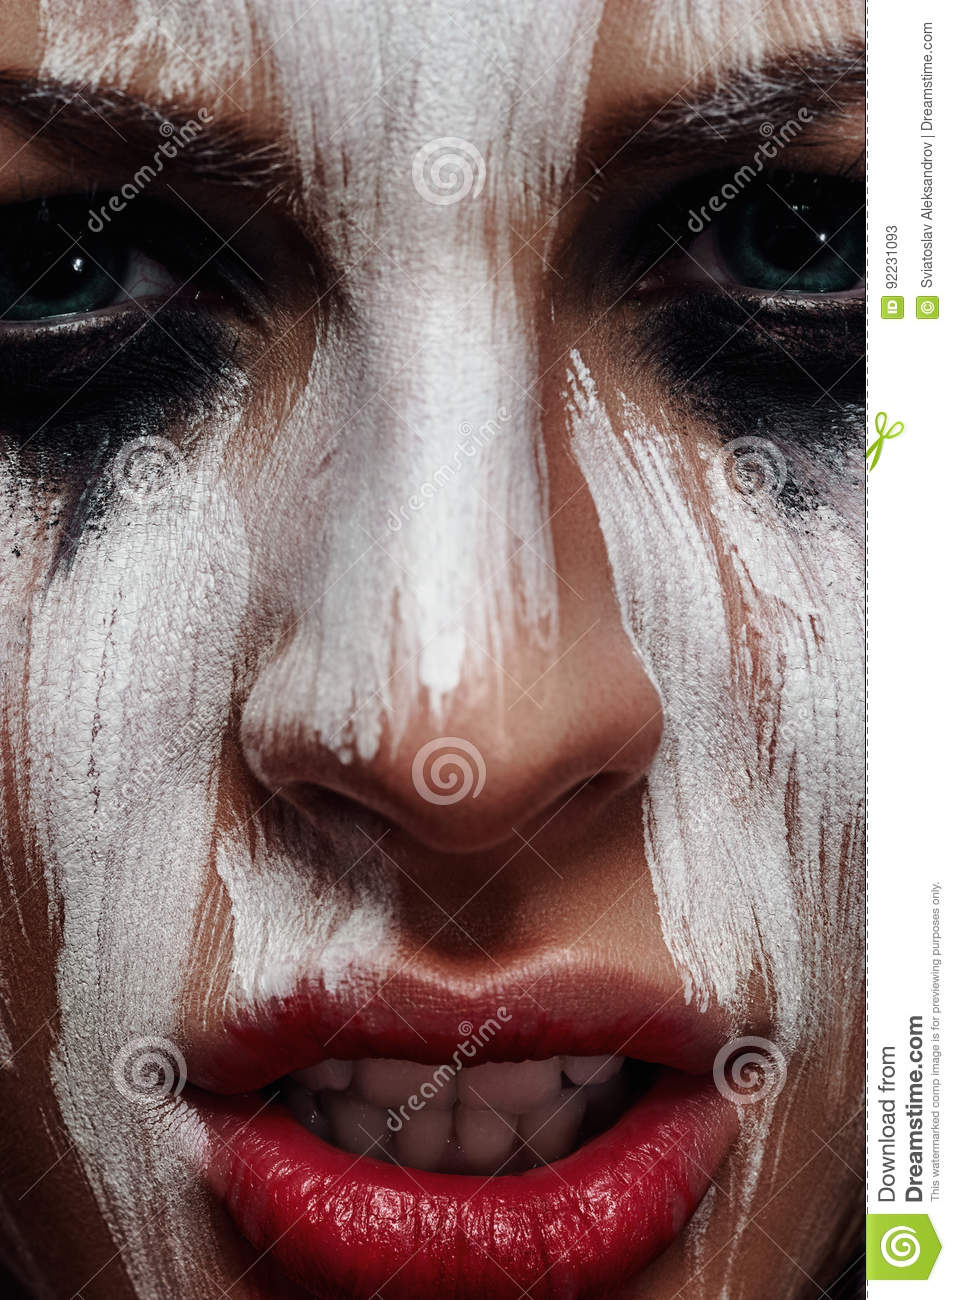 evil woman with aborigine halloween makeup stock image - image of